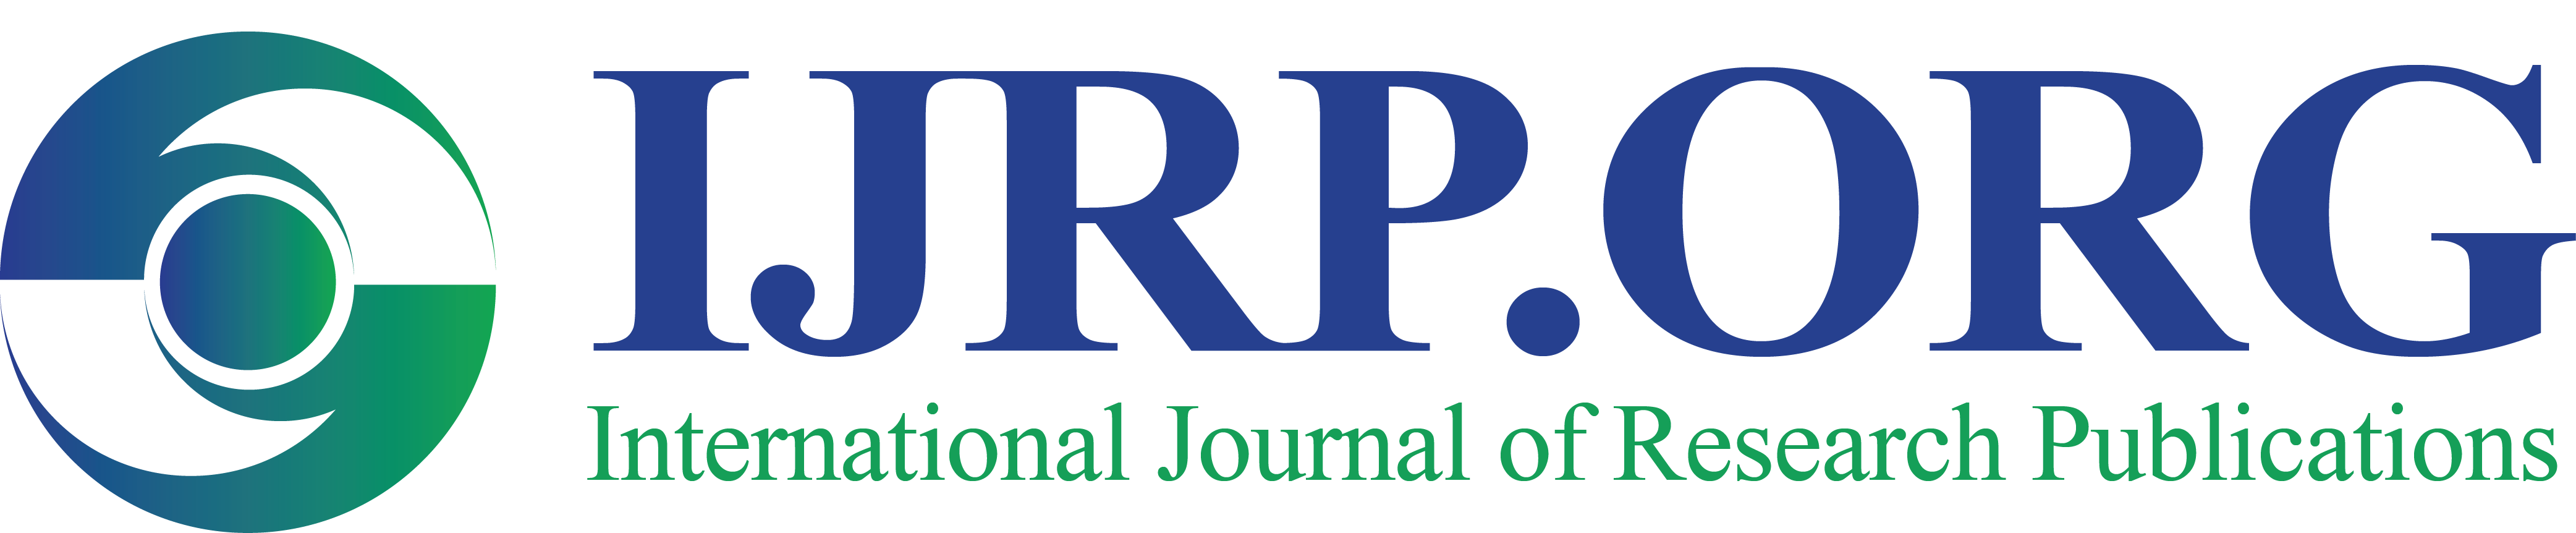 International Journal of Research Publications